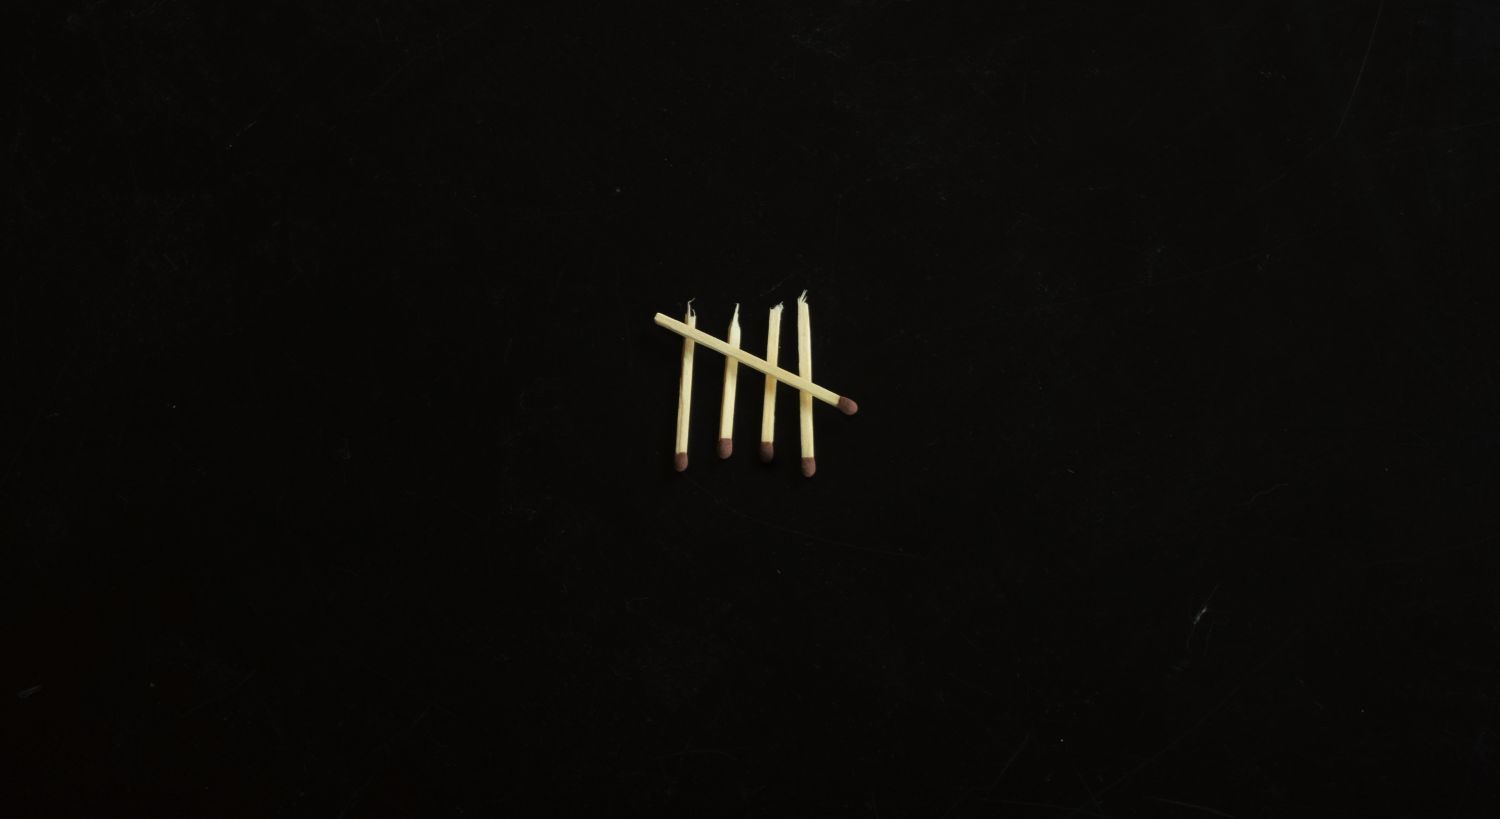 Sault 5 Album Artwork